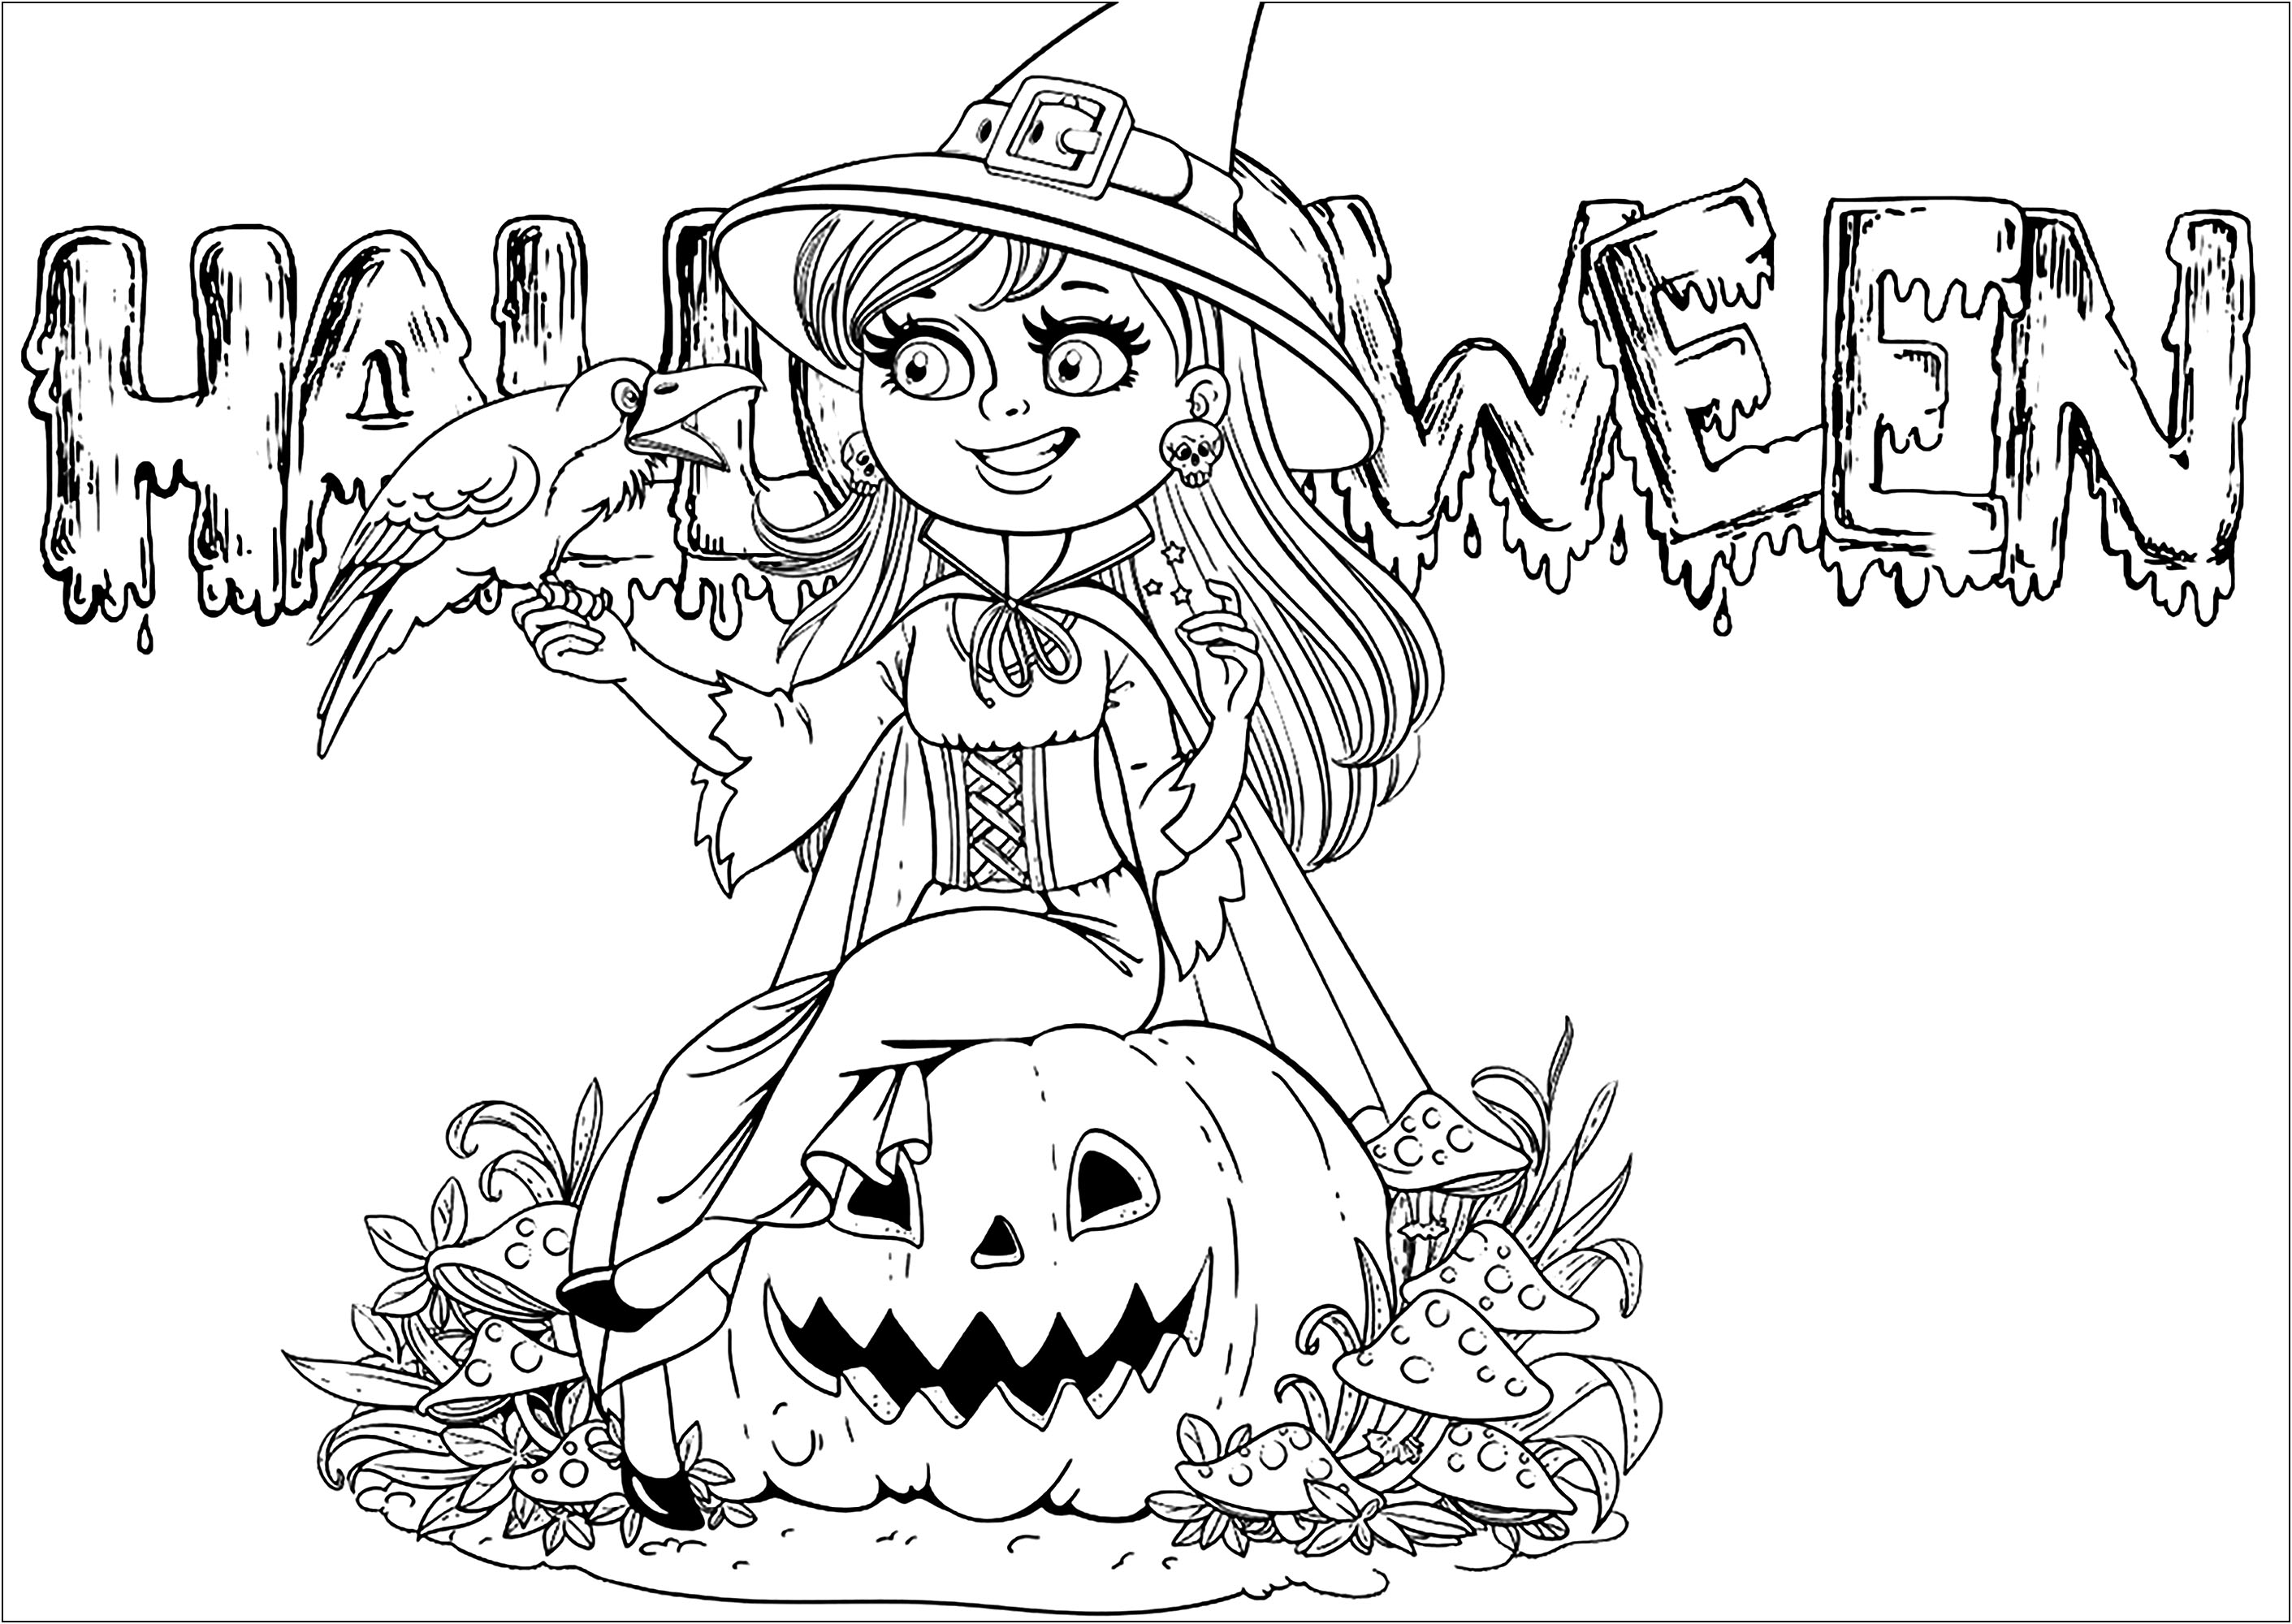 Cute Witch with pumpkin and crow to color, with Halloween text in background